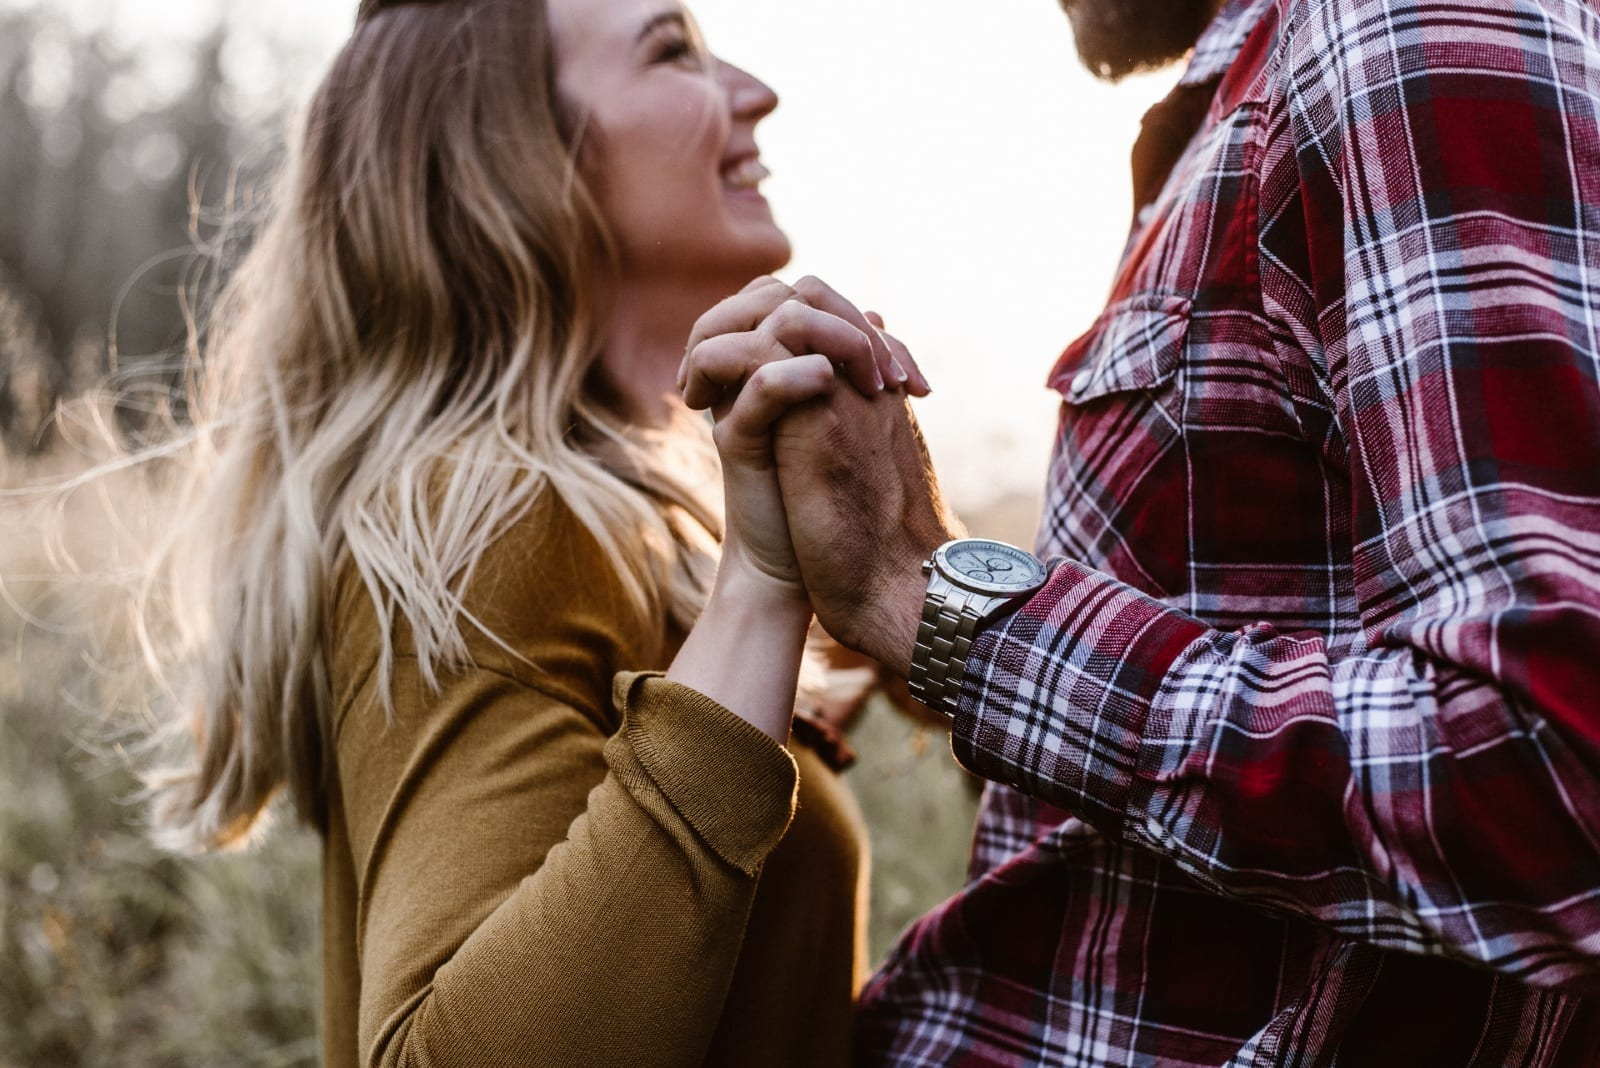 happy woman and man holding hands while standing near trees